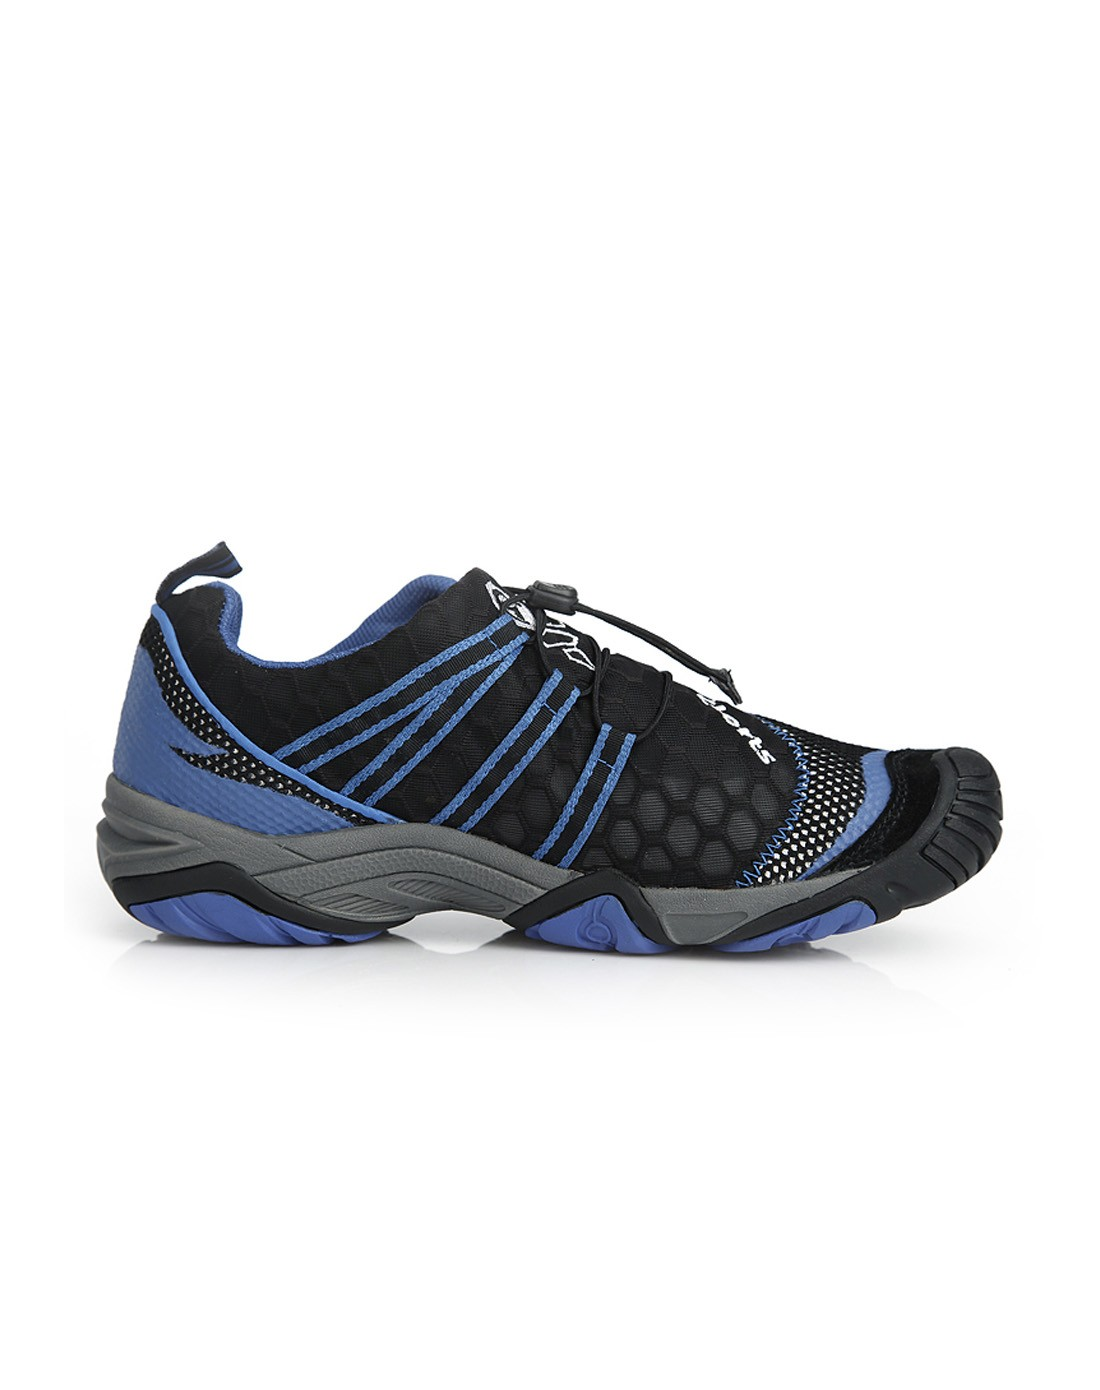 Mens Water Hiking Shoes Manufacturers, Mens Water Hiking Shoes Factory, Supply Mens Water Hiking Shoes